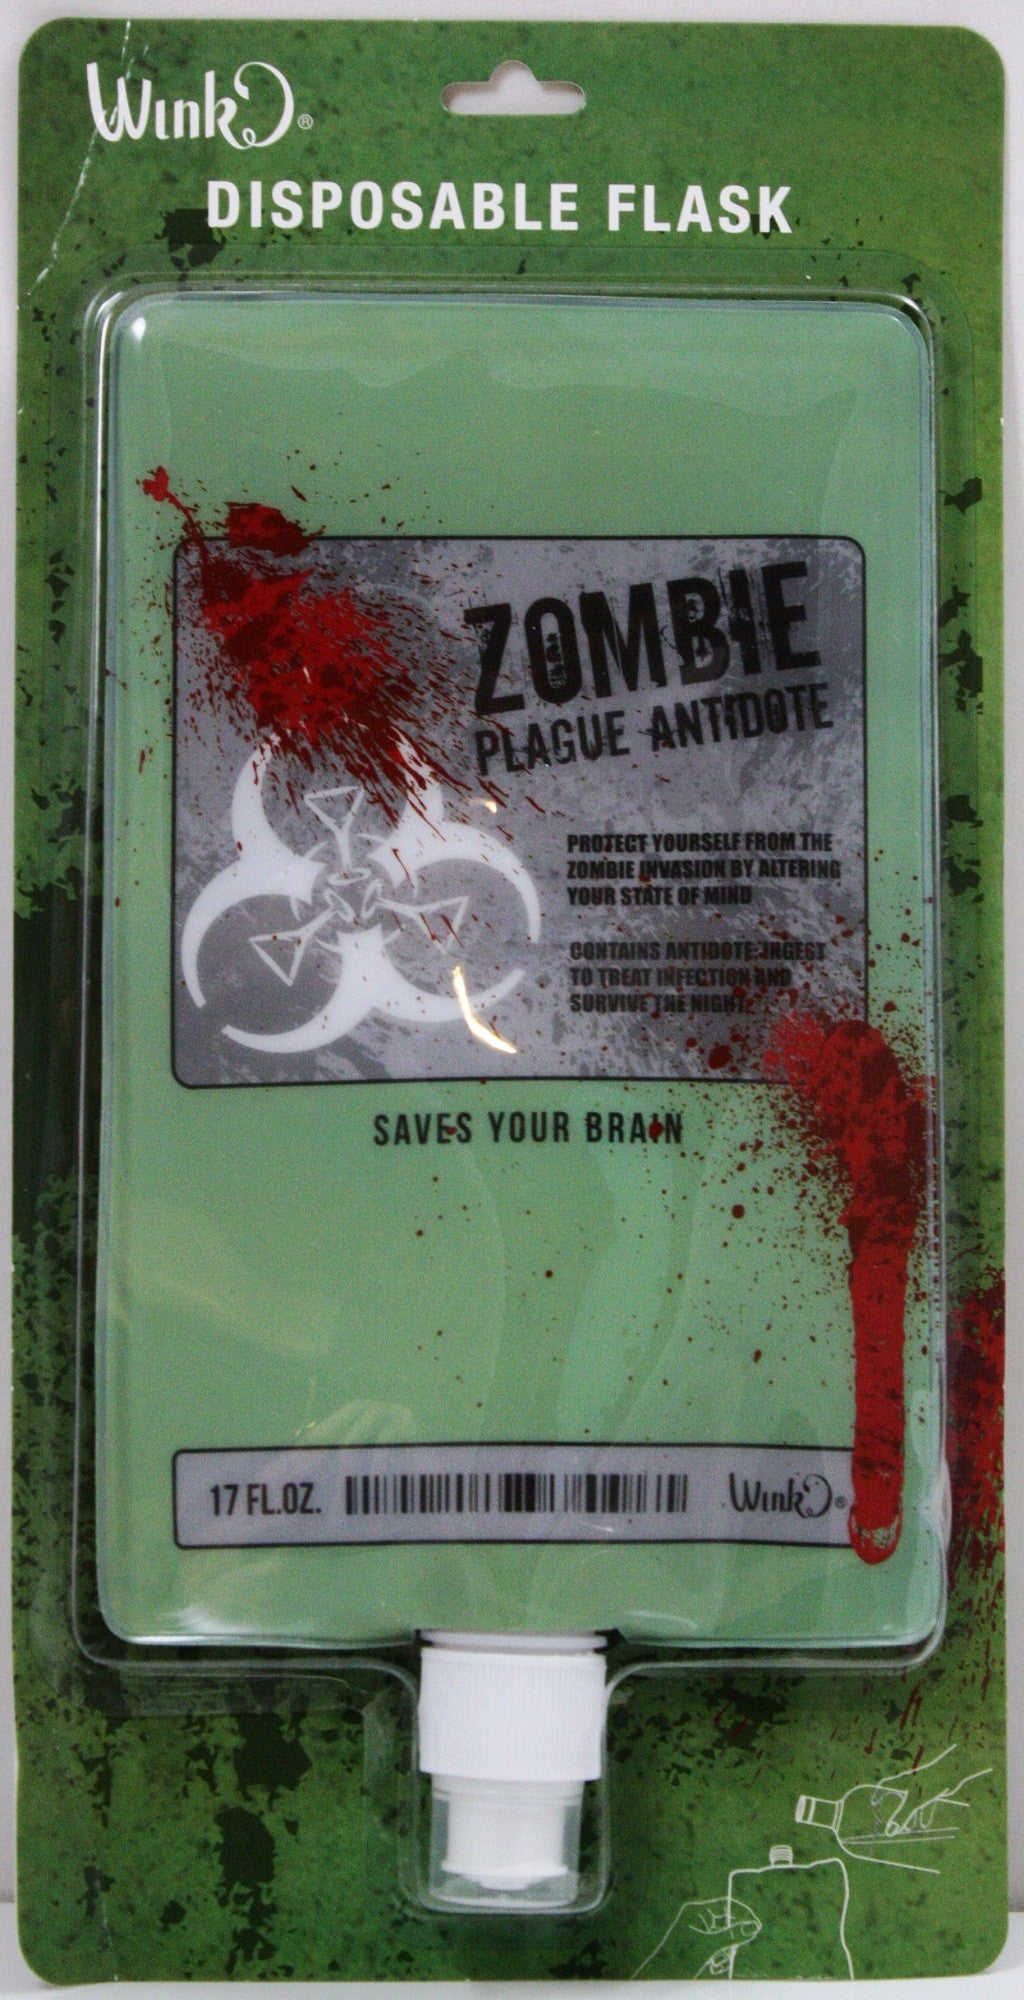 17oz Zombie Plague Antidote Disposable Flask - Off The Wall Toys and Gifts